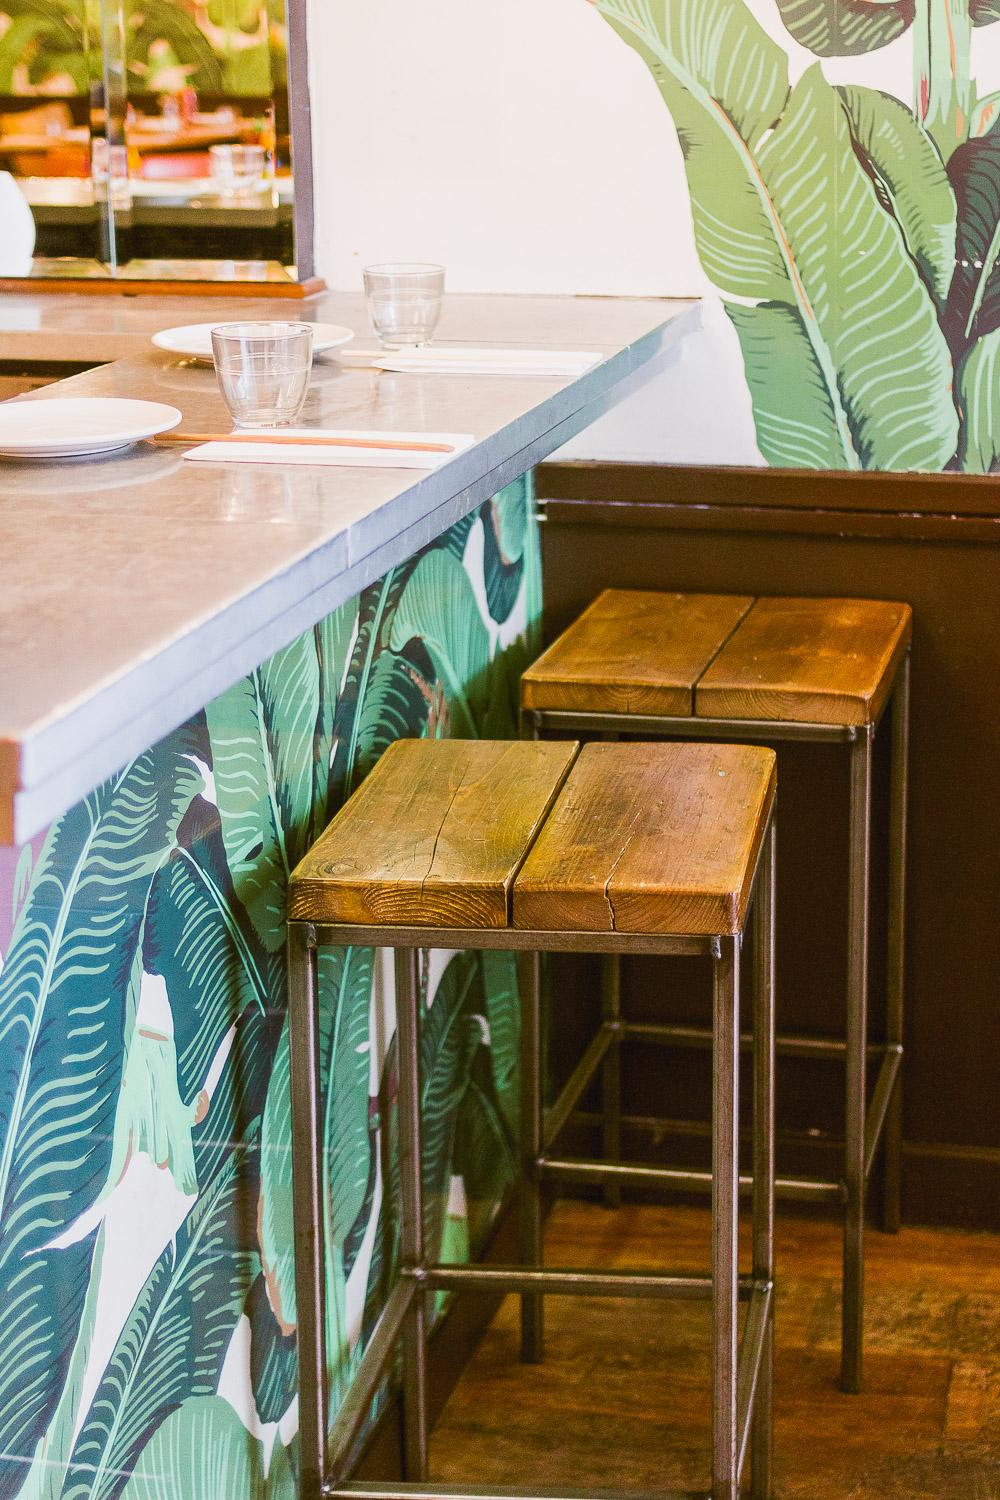 bar stools viet Grill Restaurant pho mile Vietnamese modern kingsland road london